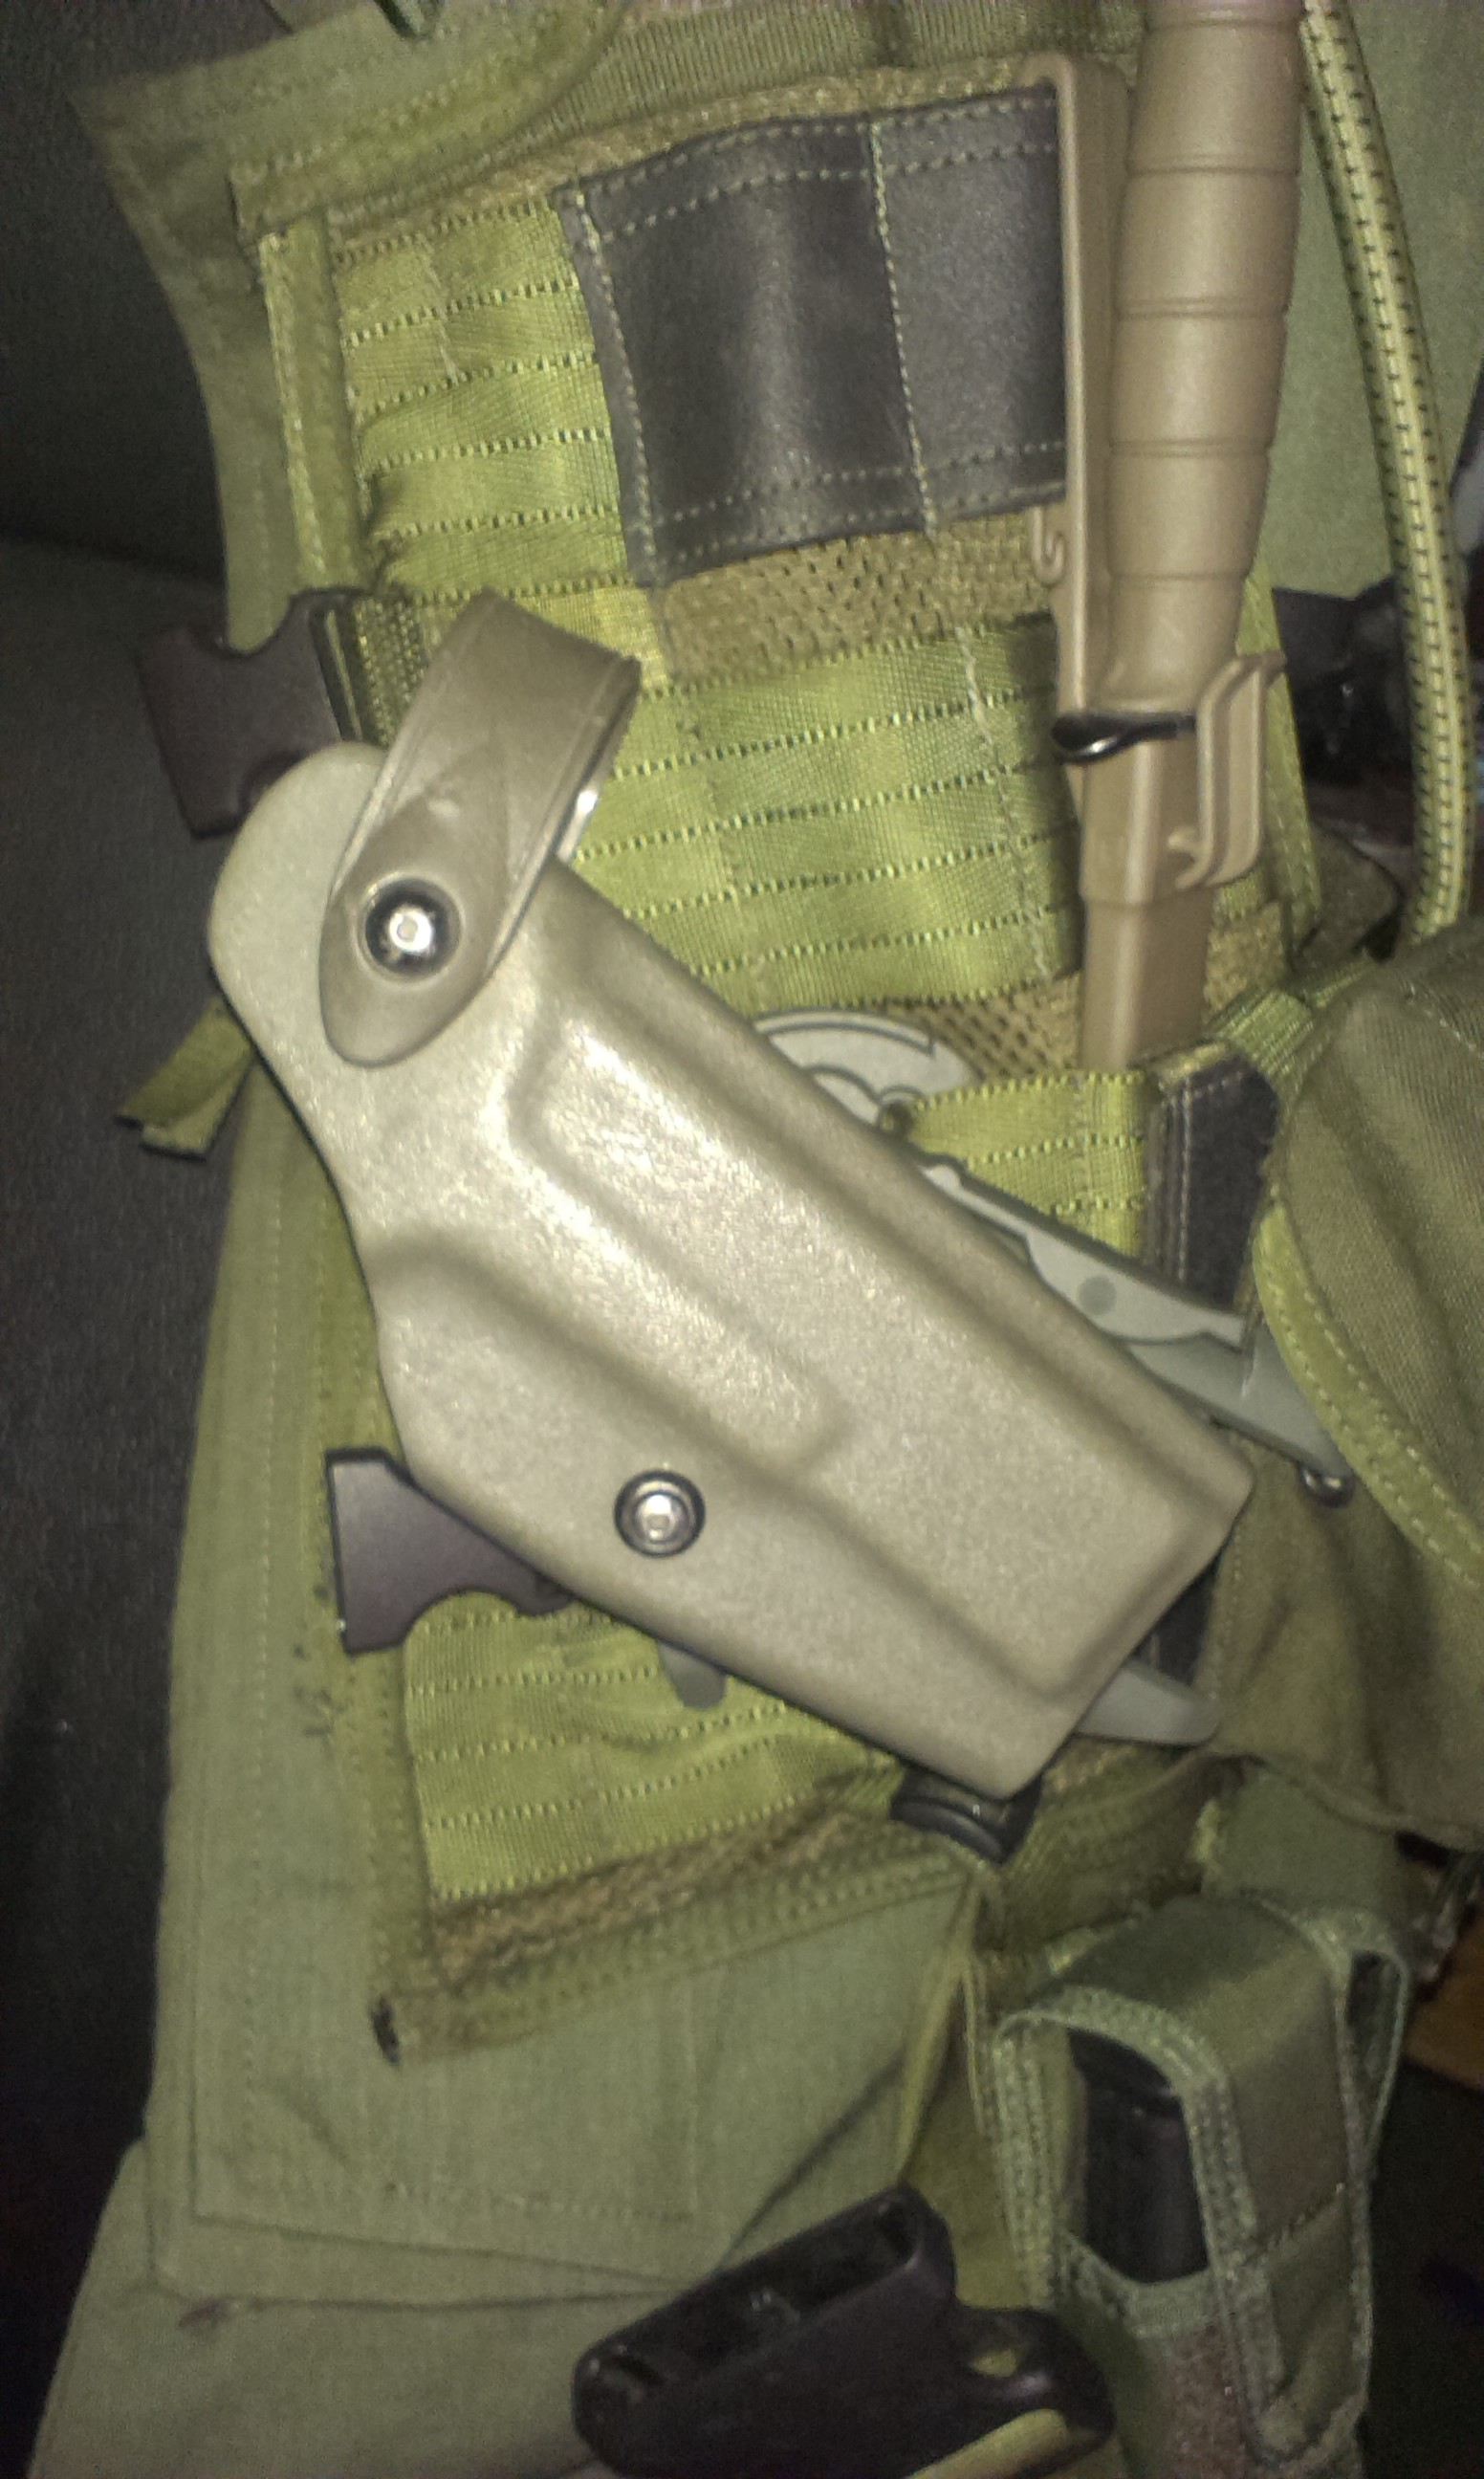 Holster attached in vest assembly